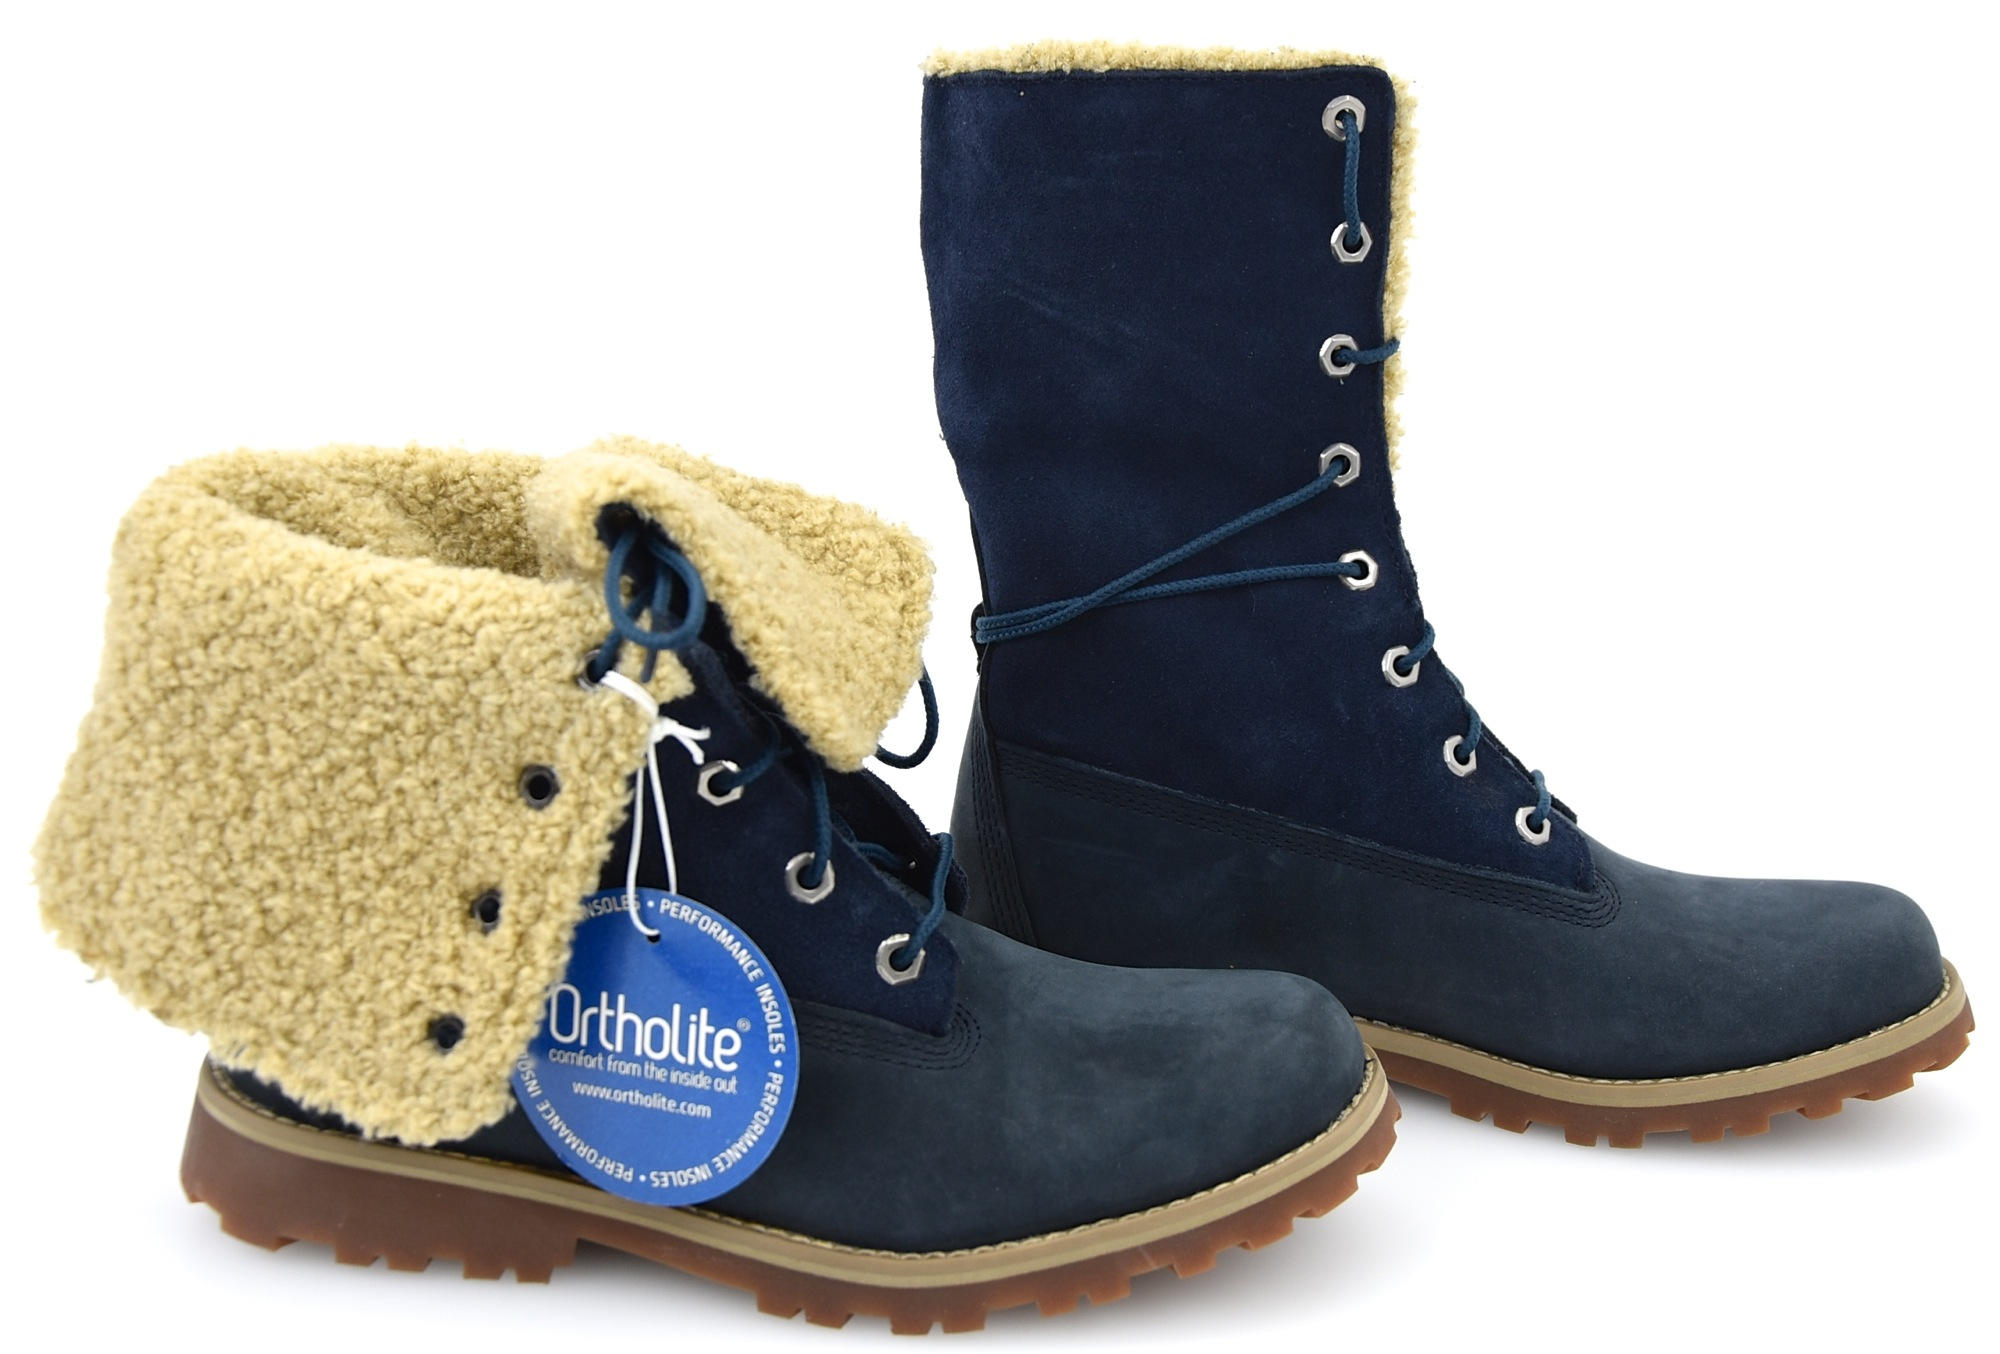 4a699ad90270b3 TIMBERLAND KIND JUNGEN STIEFEL STIEFELETTEN ANKLE BOOTS WINTER ART. 1690A